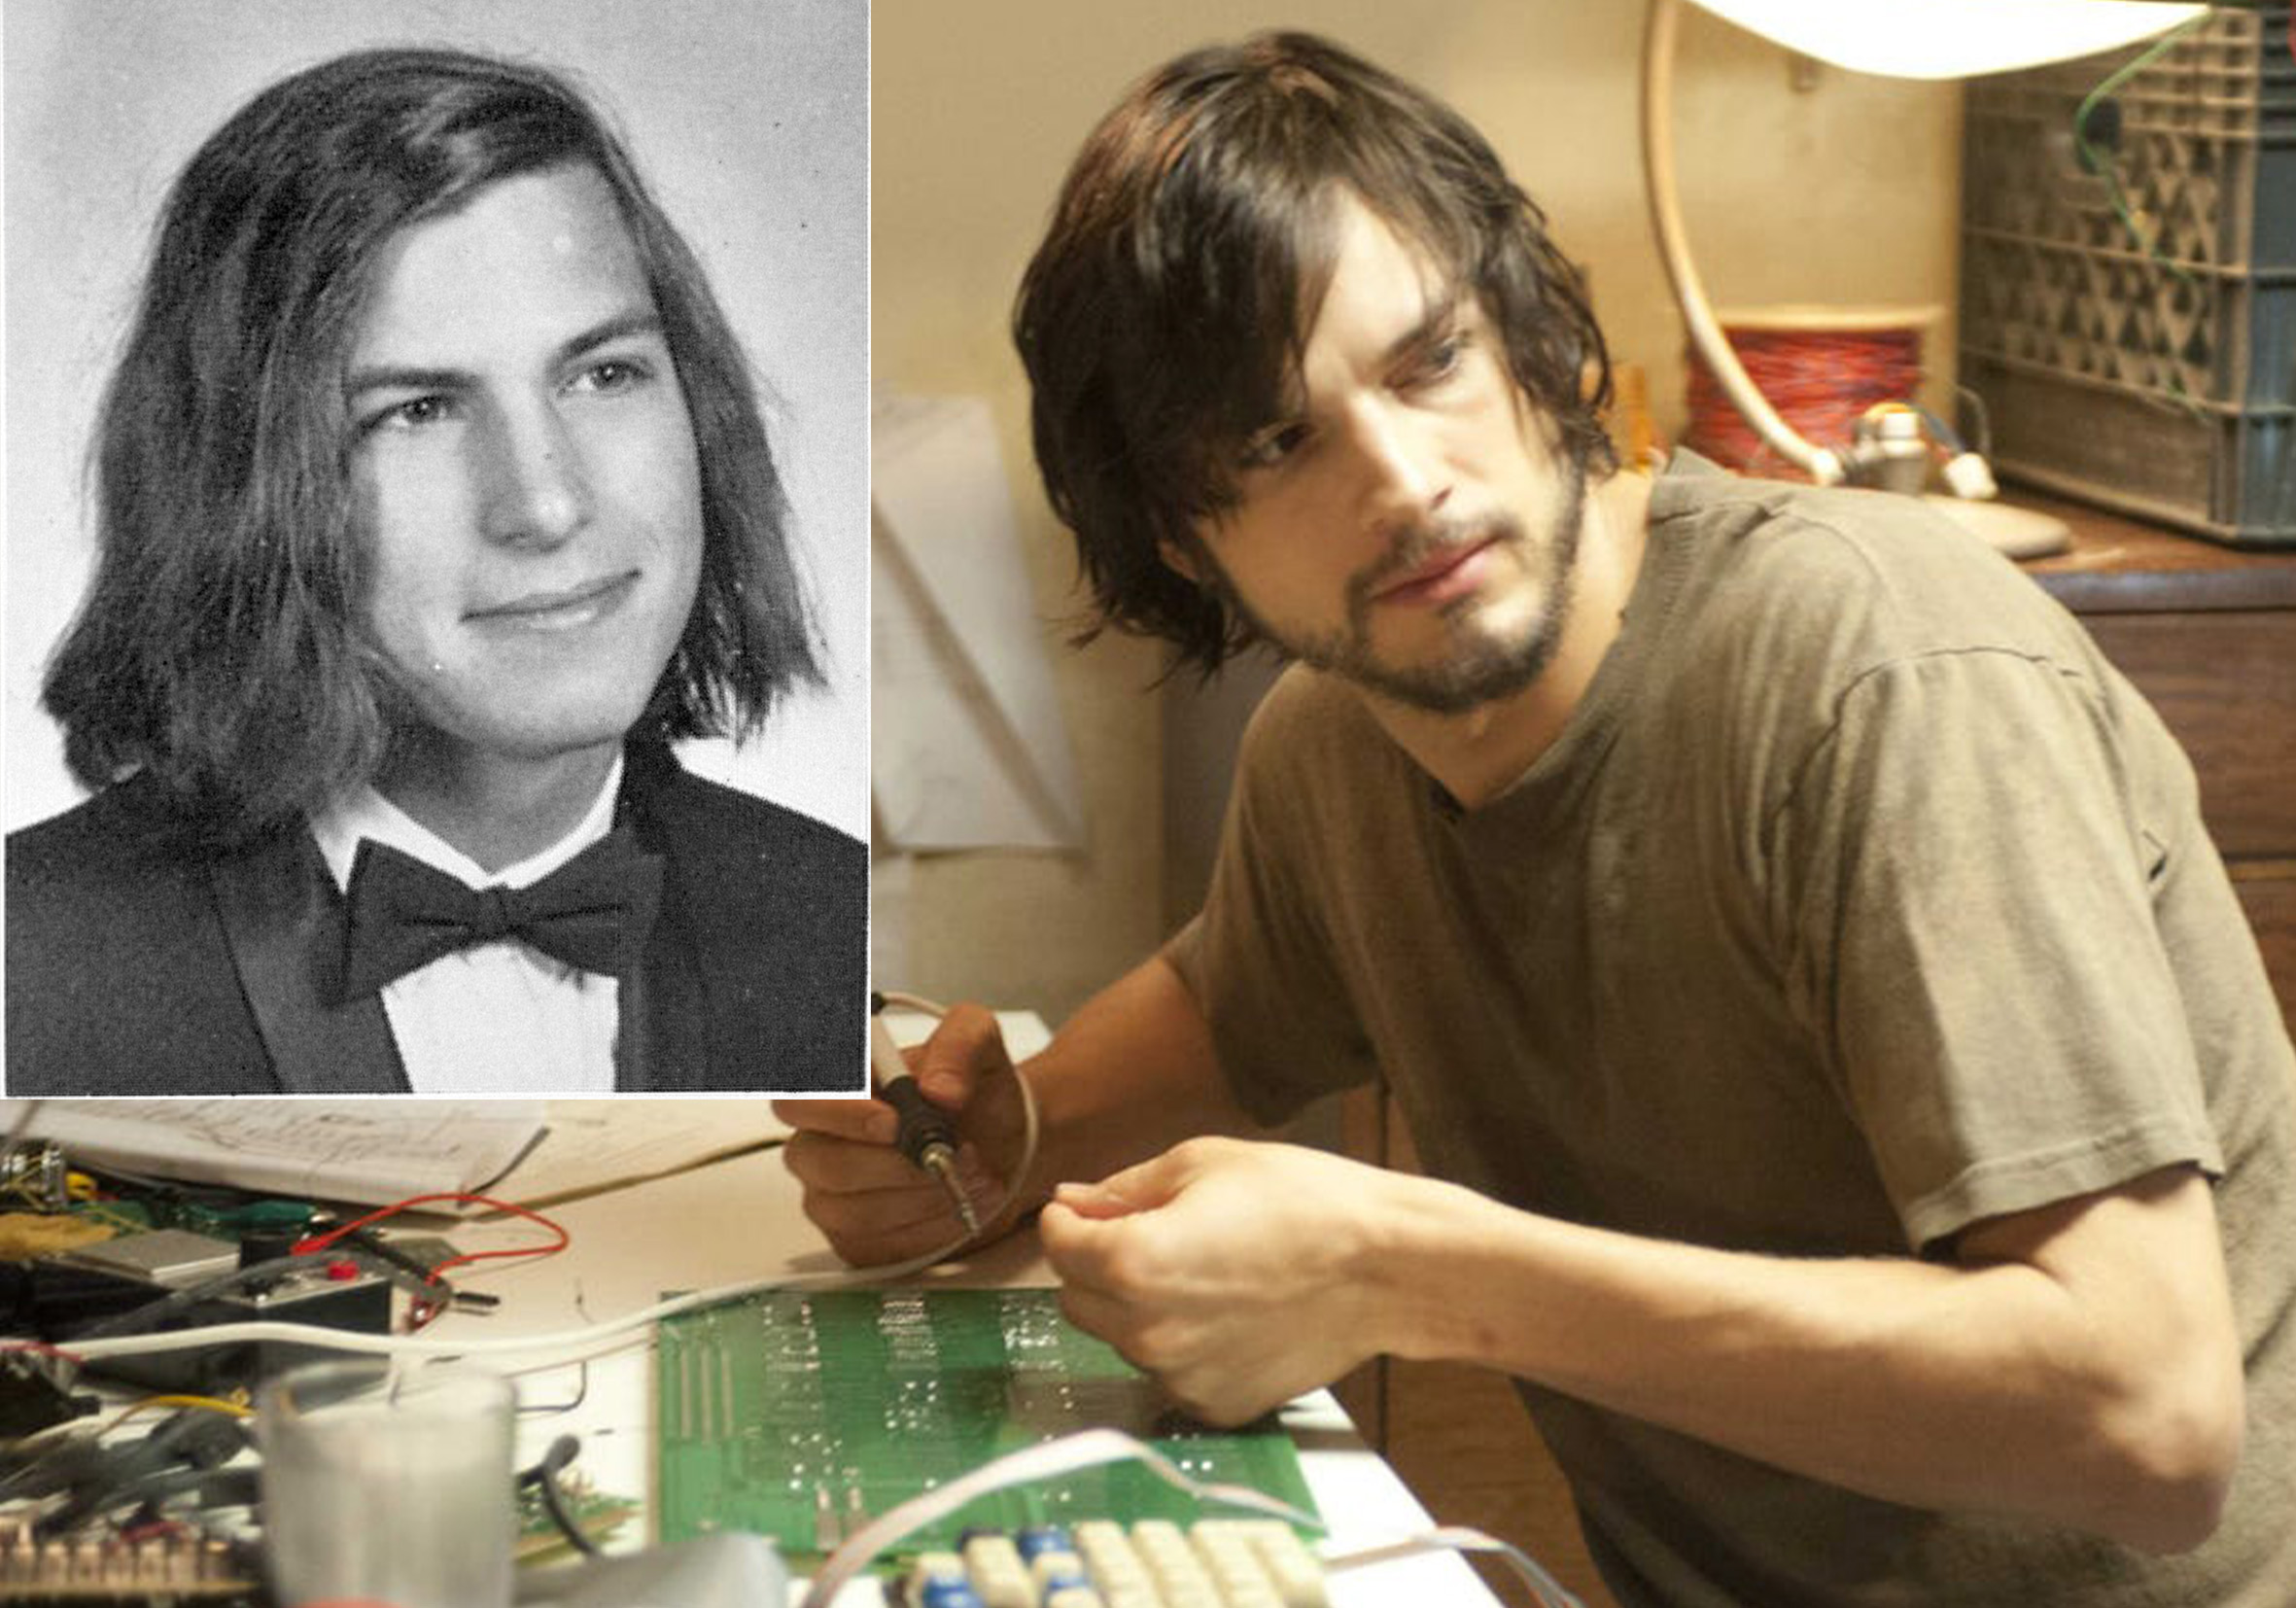 ashton kutcher steve jobs 20 Actors Who Looked Exactly Like The Real People They Played